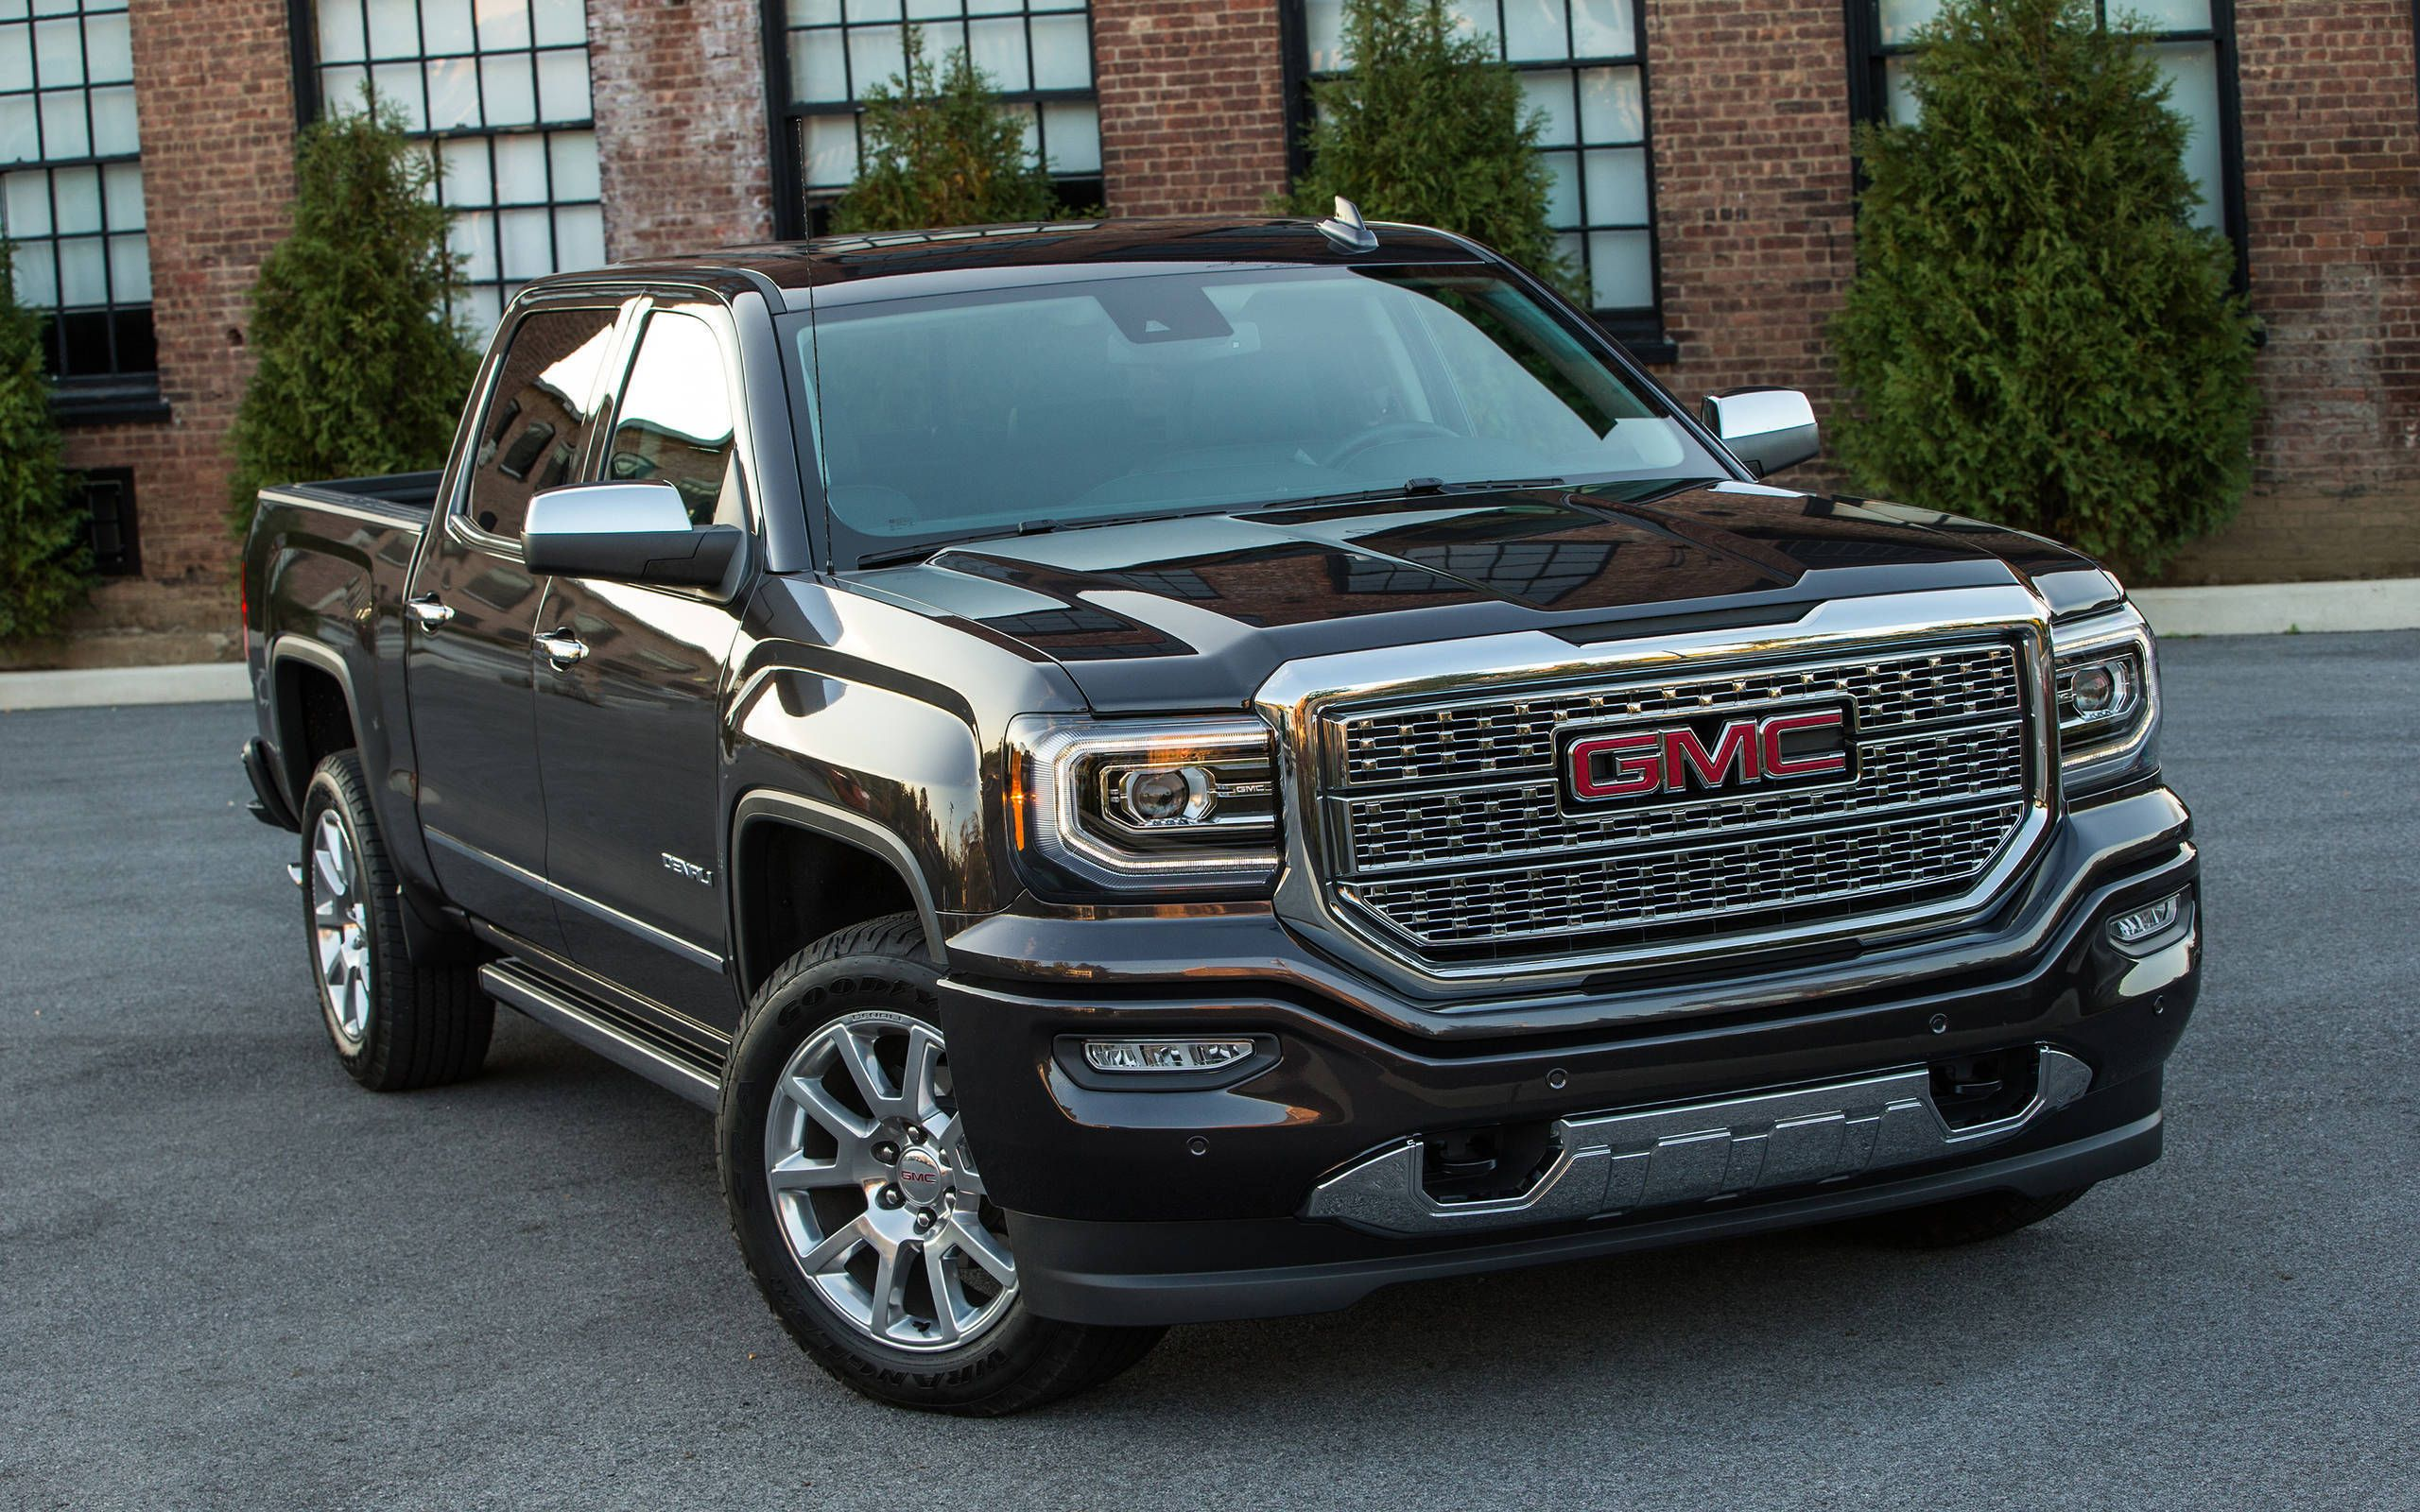 2016 Gmc Sierra Denali 1500 Review Capable Quiet And Comfortable